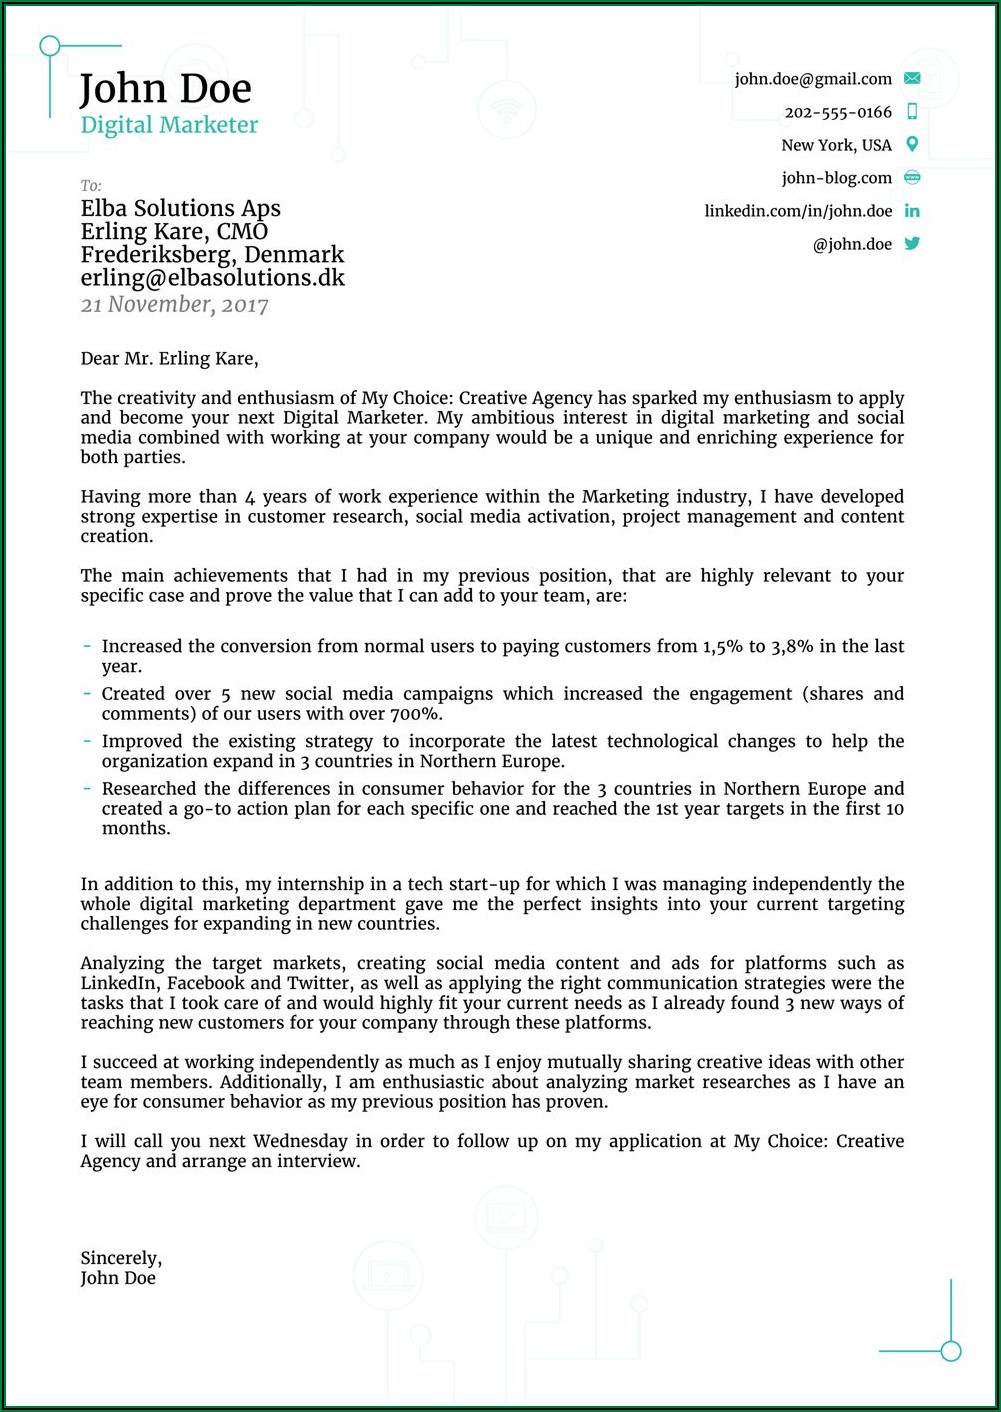 Examples Of Job Resume Cover Letter